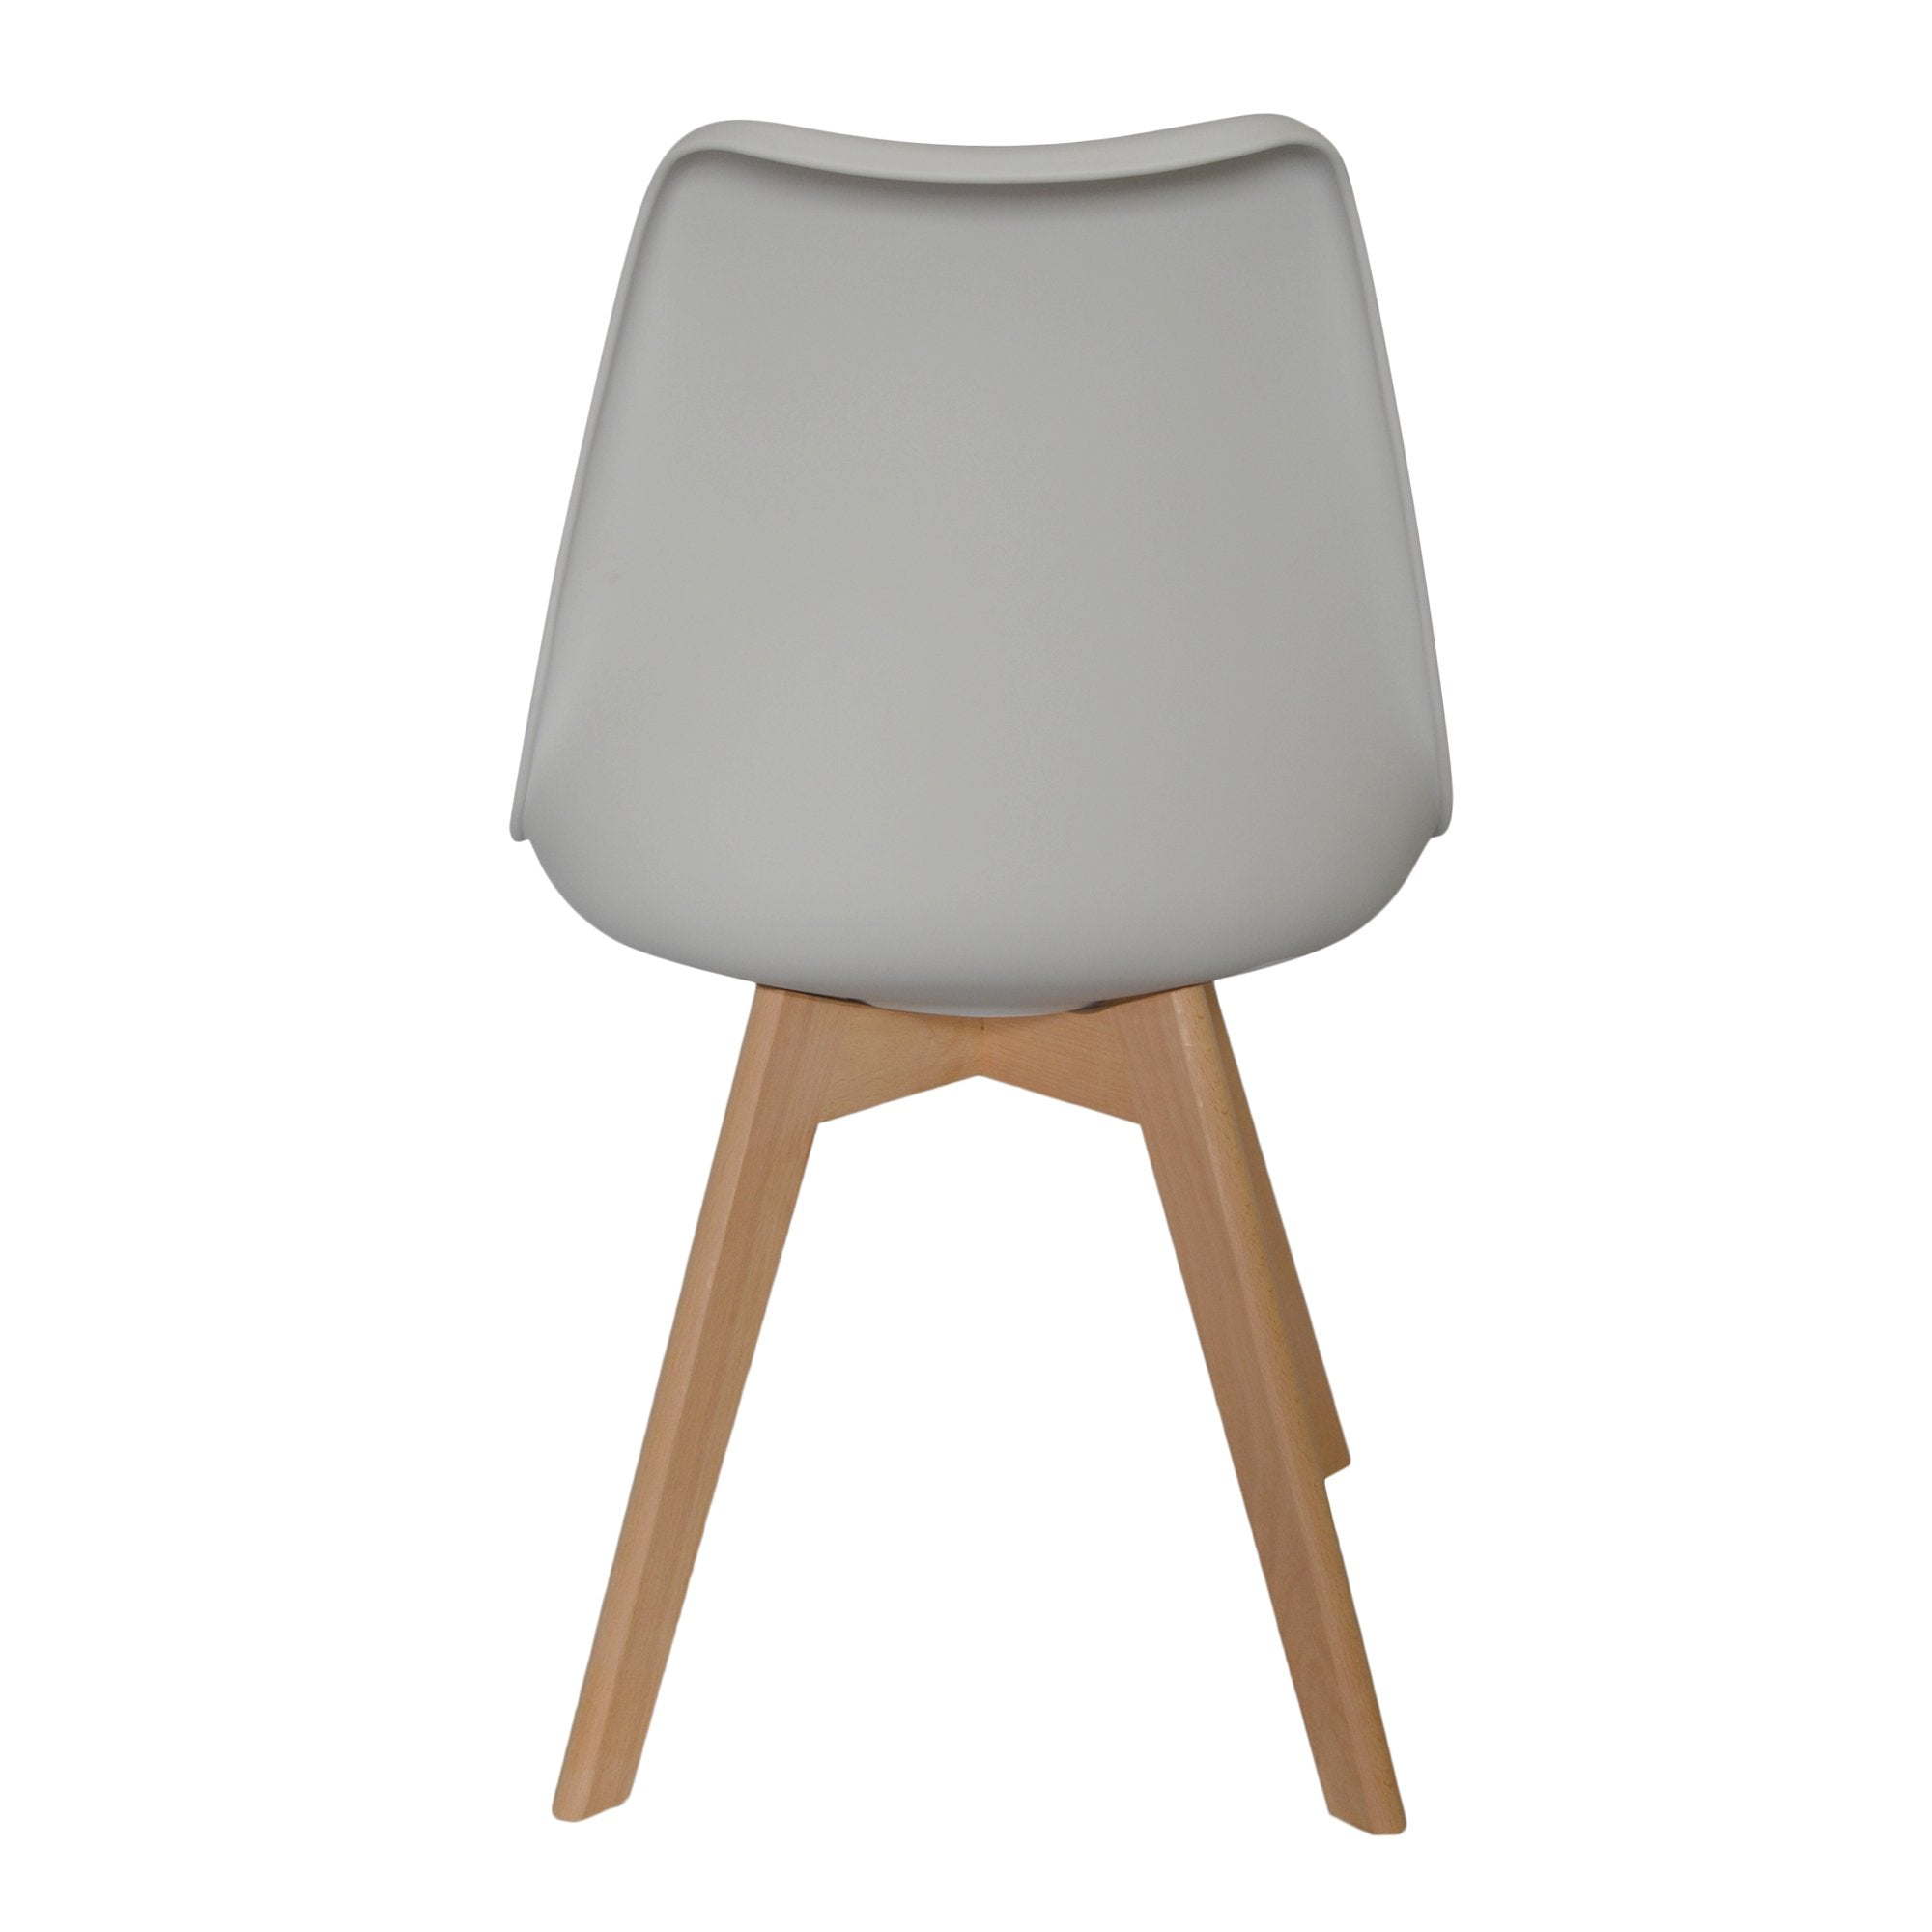 Chalkwhite Chair for the Suave You from TeakTale Home Decors